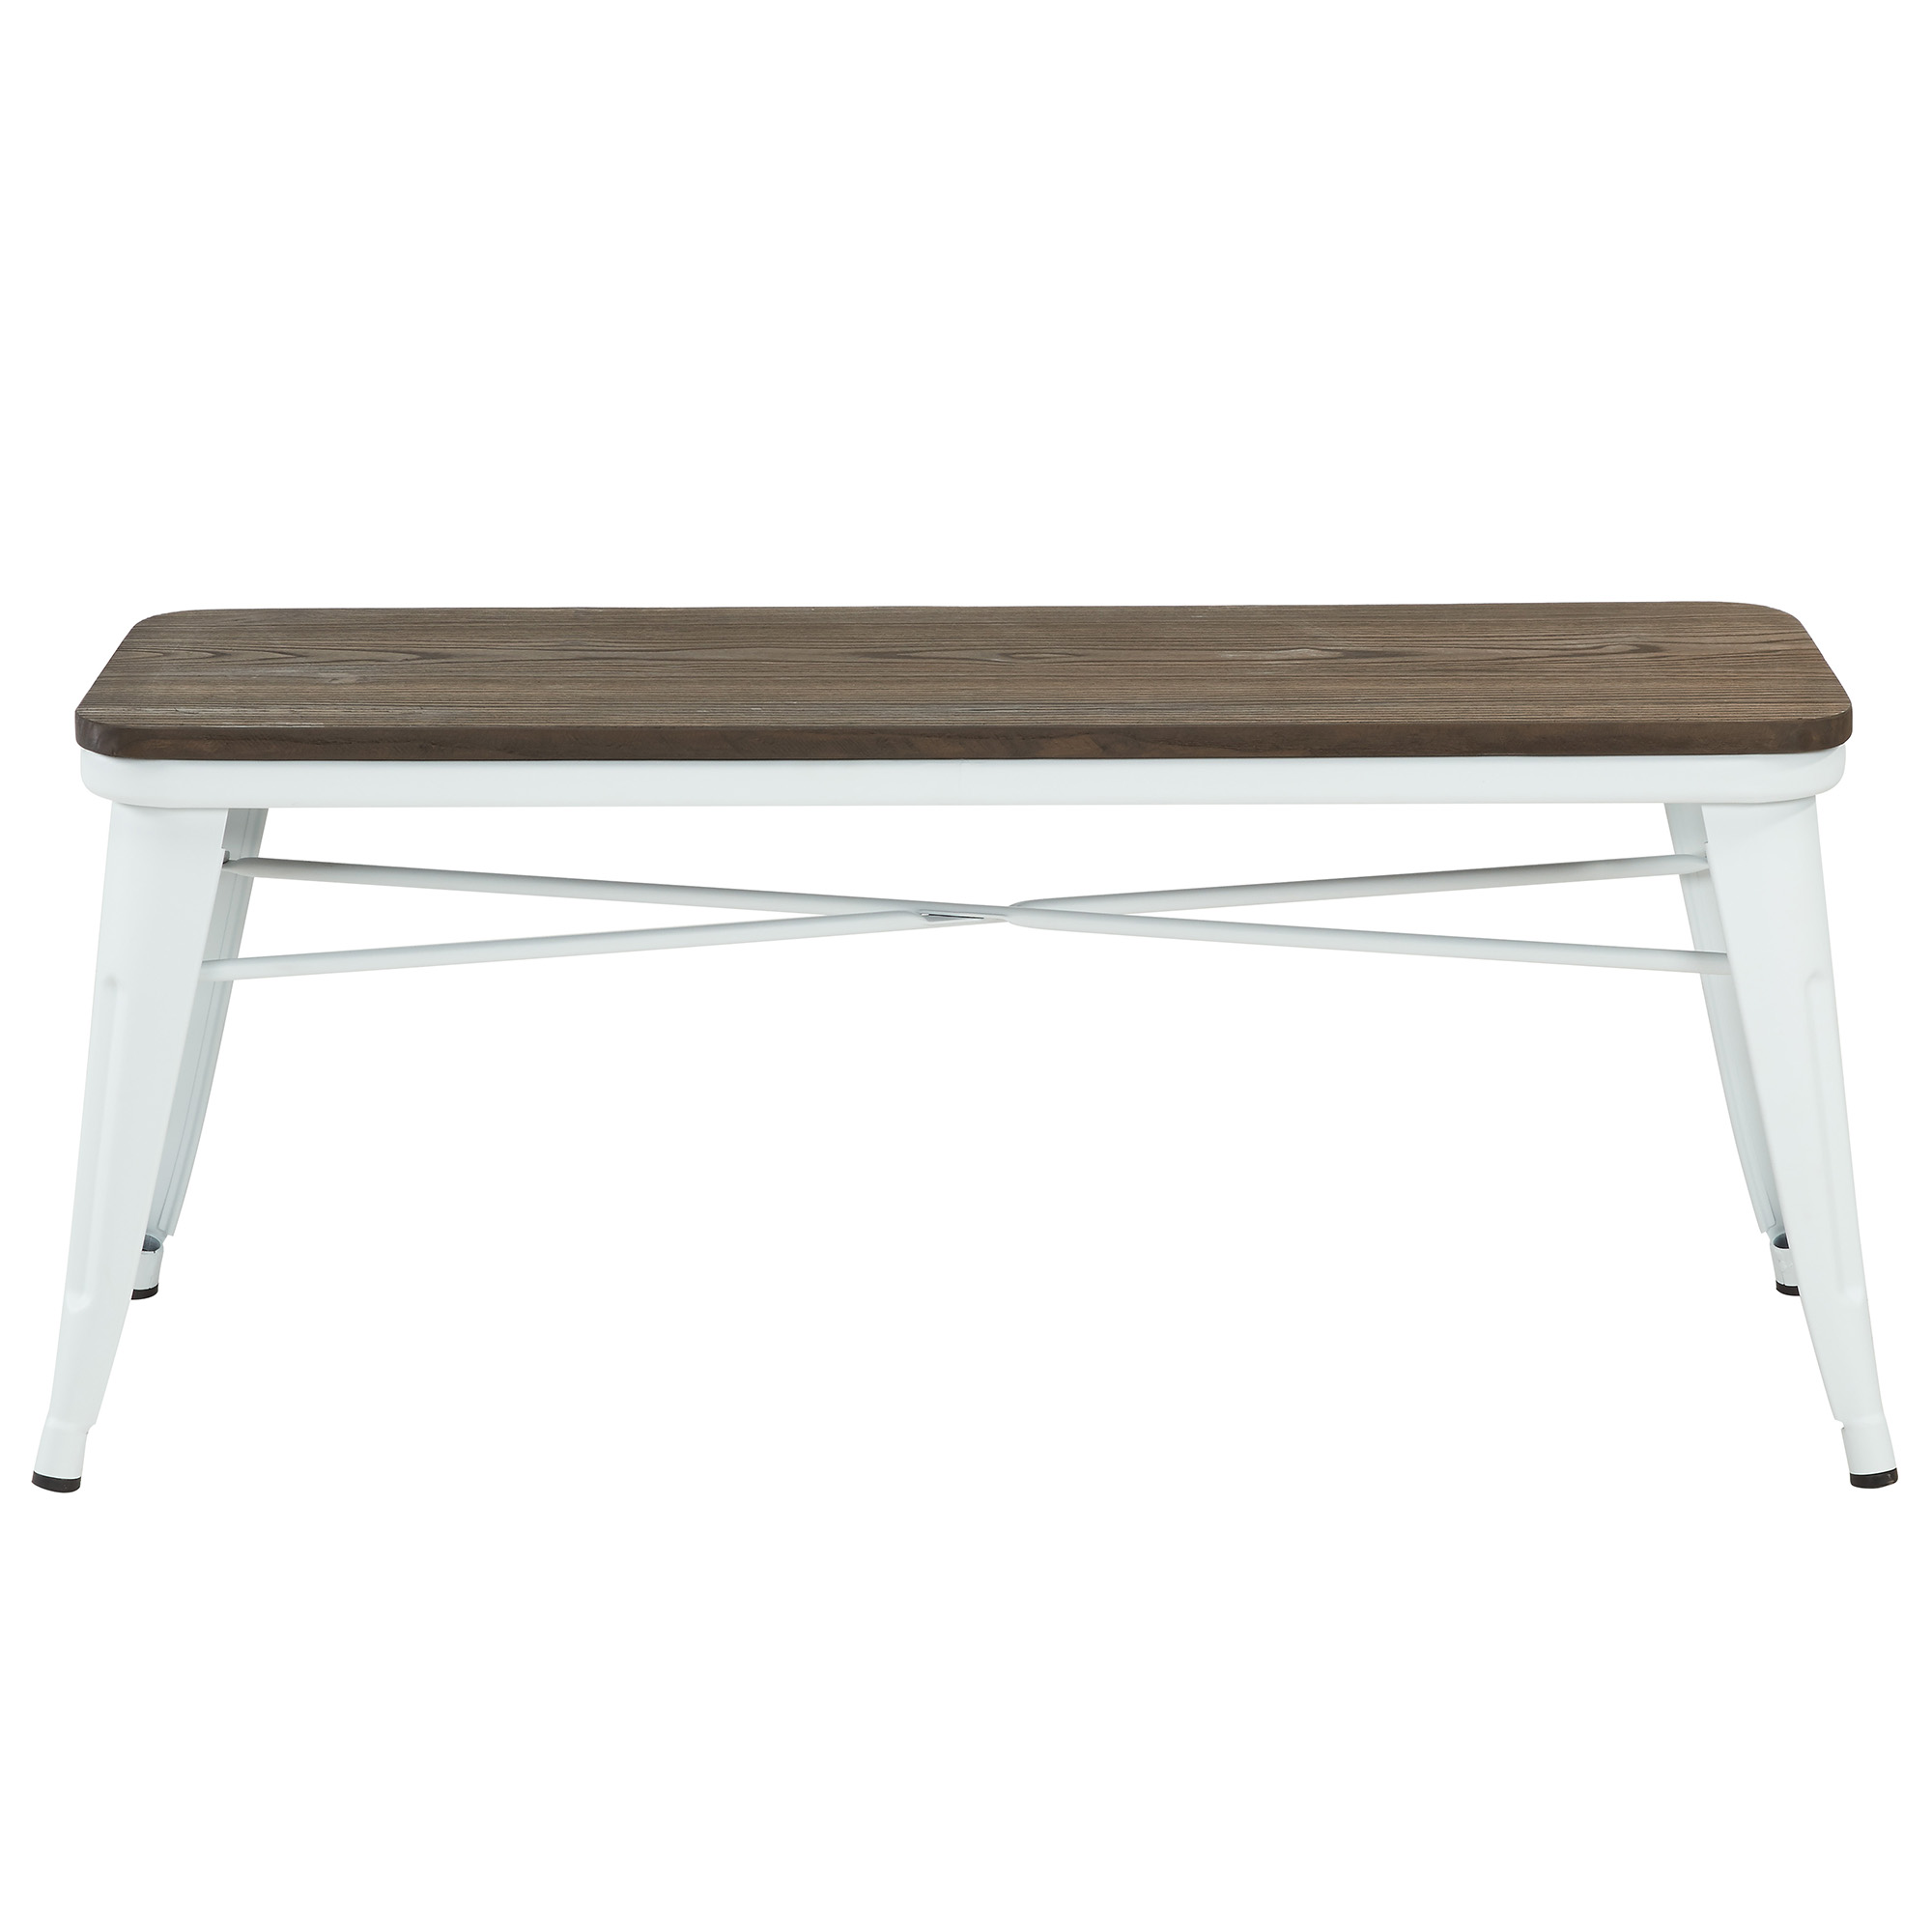 Rustic Industrial Metal & Solid Wood Bench in White